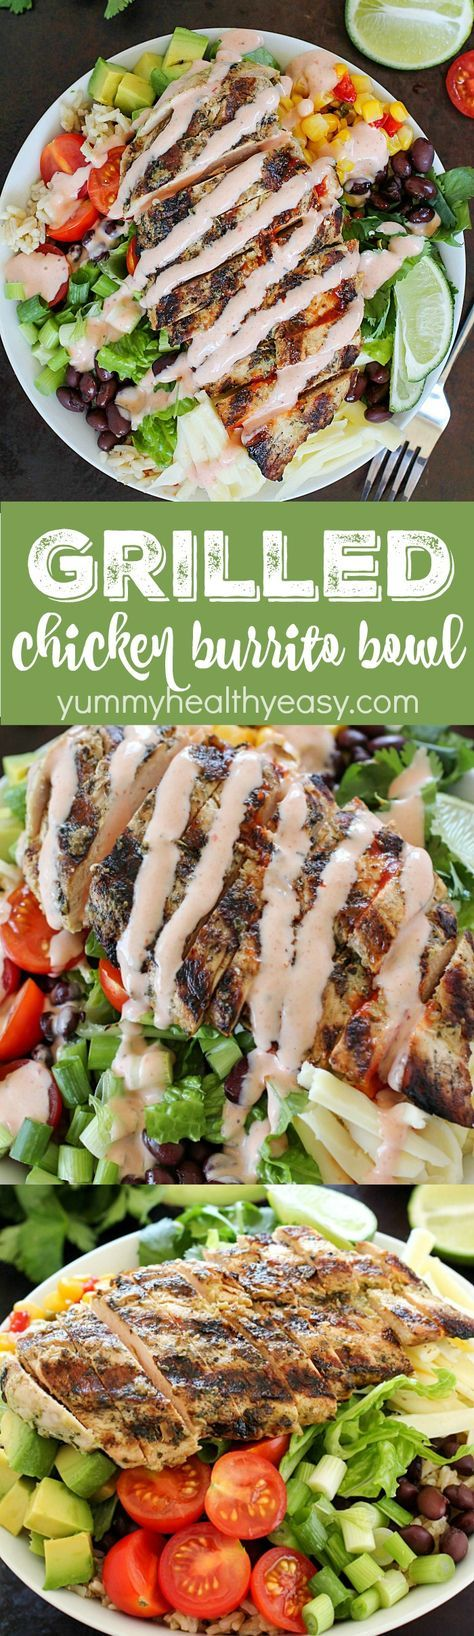 Ditch the tortilla and put everything you love about burritos into a yummy chicken burrito bowl! This recipe is so easy and adaptable to what you like. The best part of this recipe is the tender, marinated and grilled chicken! Add in any combo of brown rice, black beans, lettuce, corn, avocado, cheese, green onions, cilantro, tomatoes, salsa and a drizzling of ranch taco sauce. A fresh, delicious and healthy lunch or dinner!